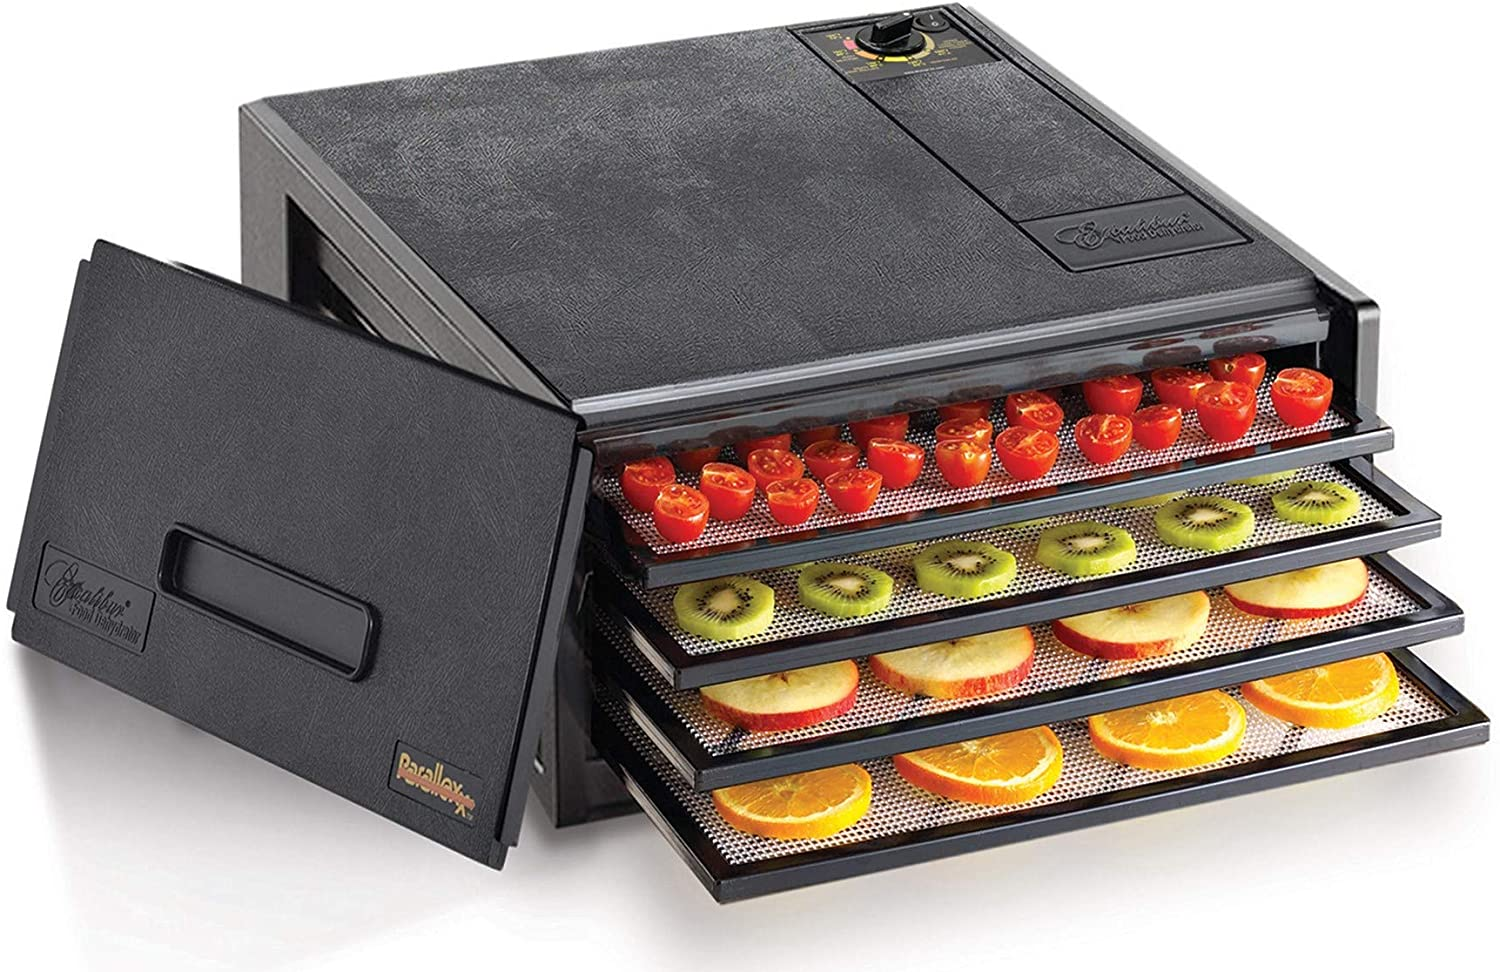 Excalibur Electric Food Dehydrator